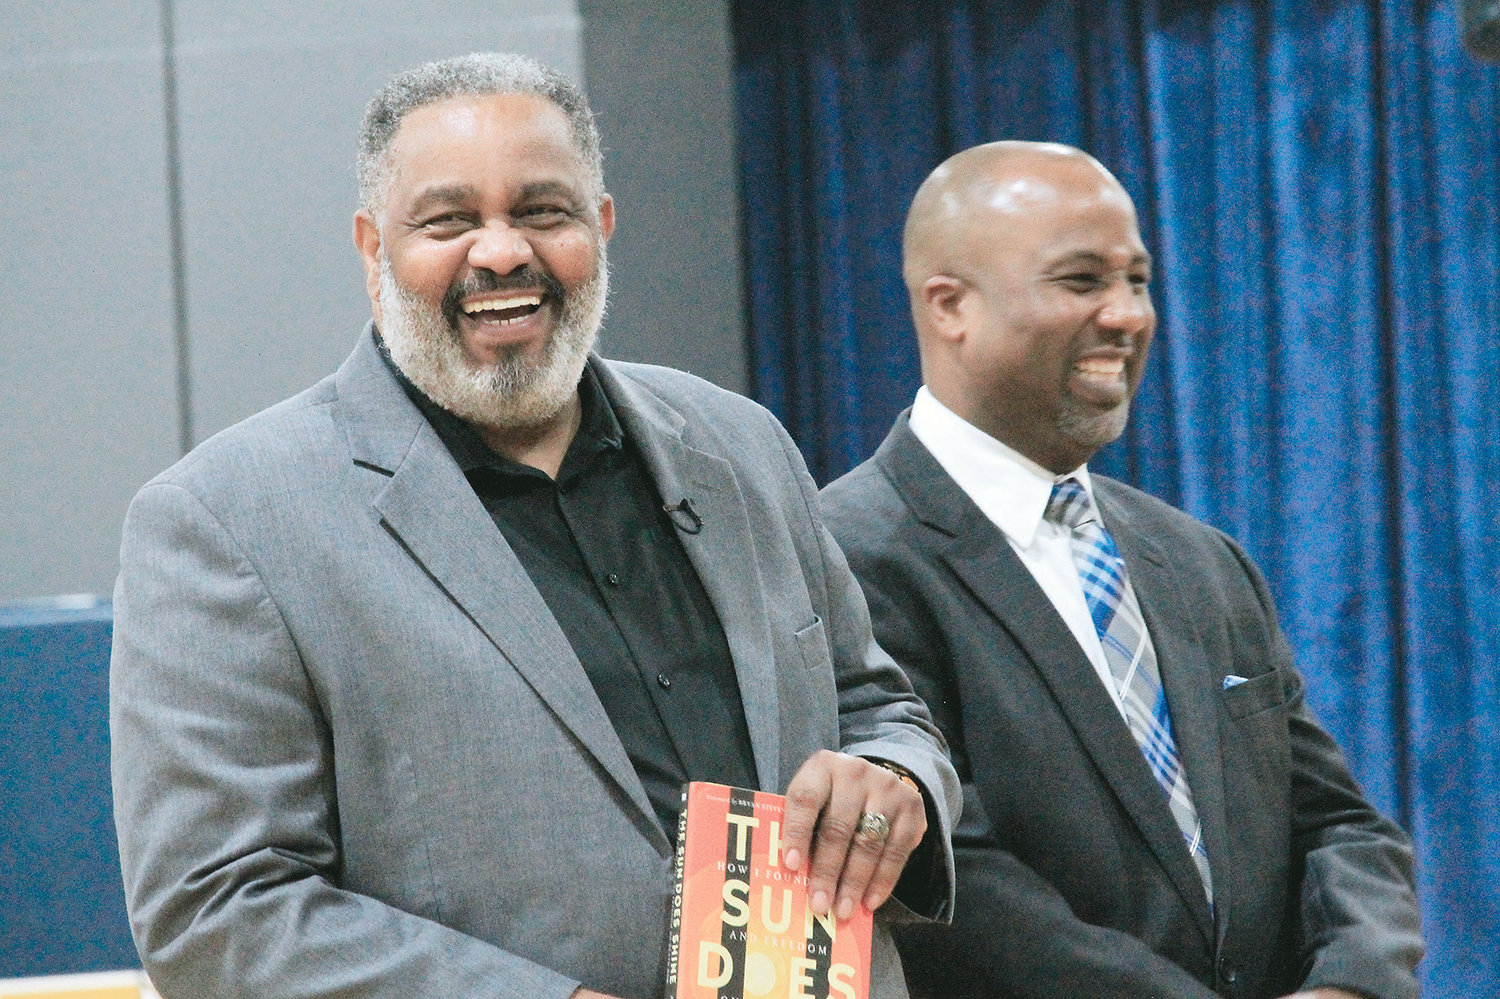 Anthony Ray Hinton and Dora High School Assistant Principal Yohance Prioleau laugh at a joke following Hinton's presentation at Dora High on Wednesday.